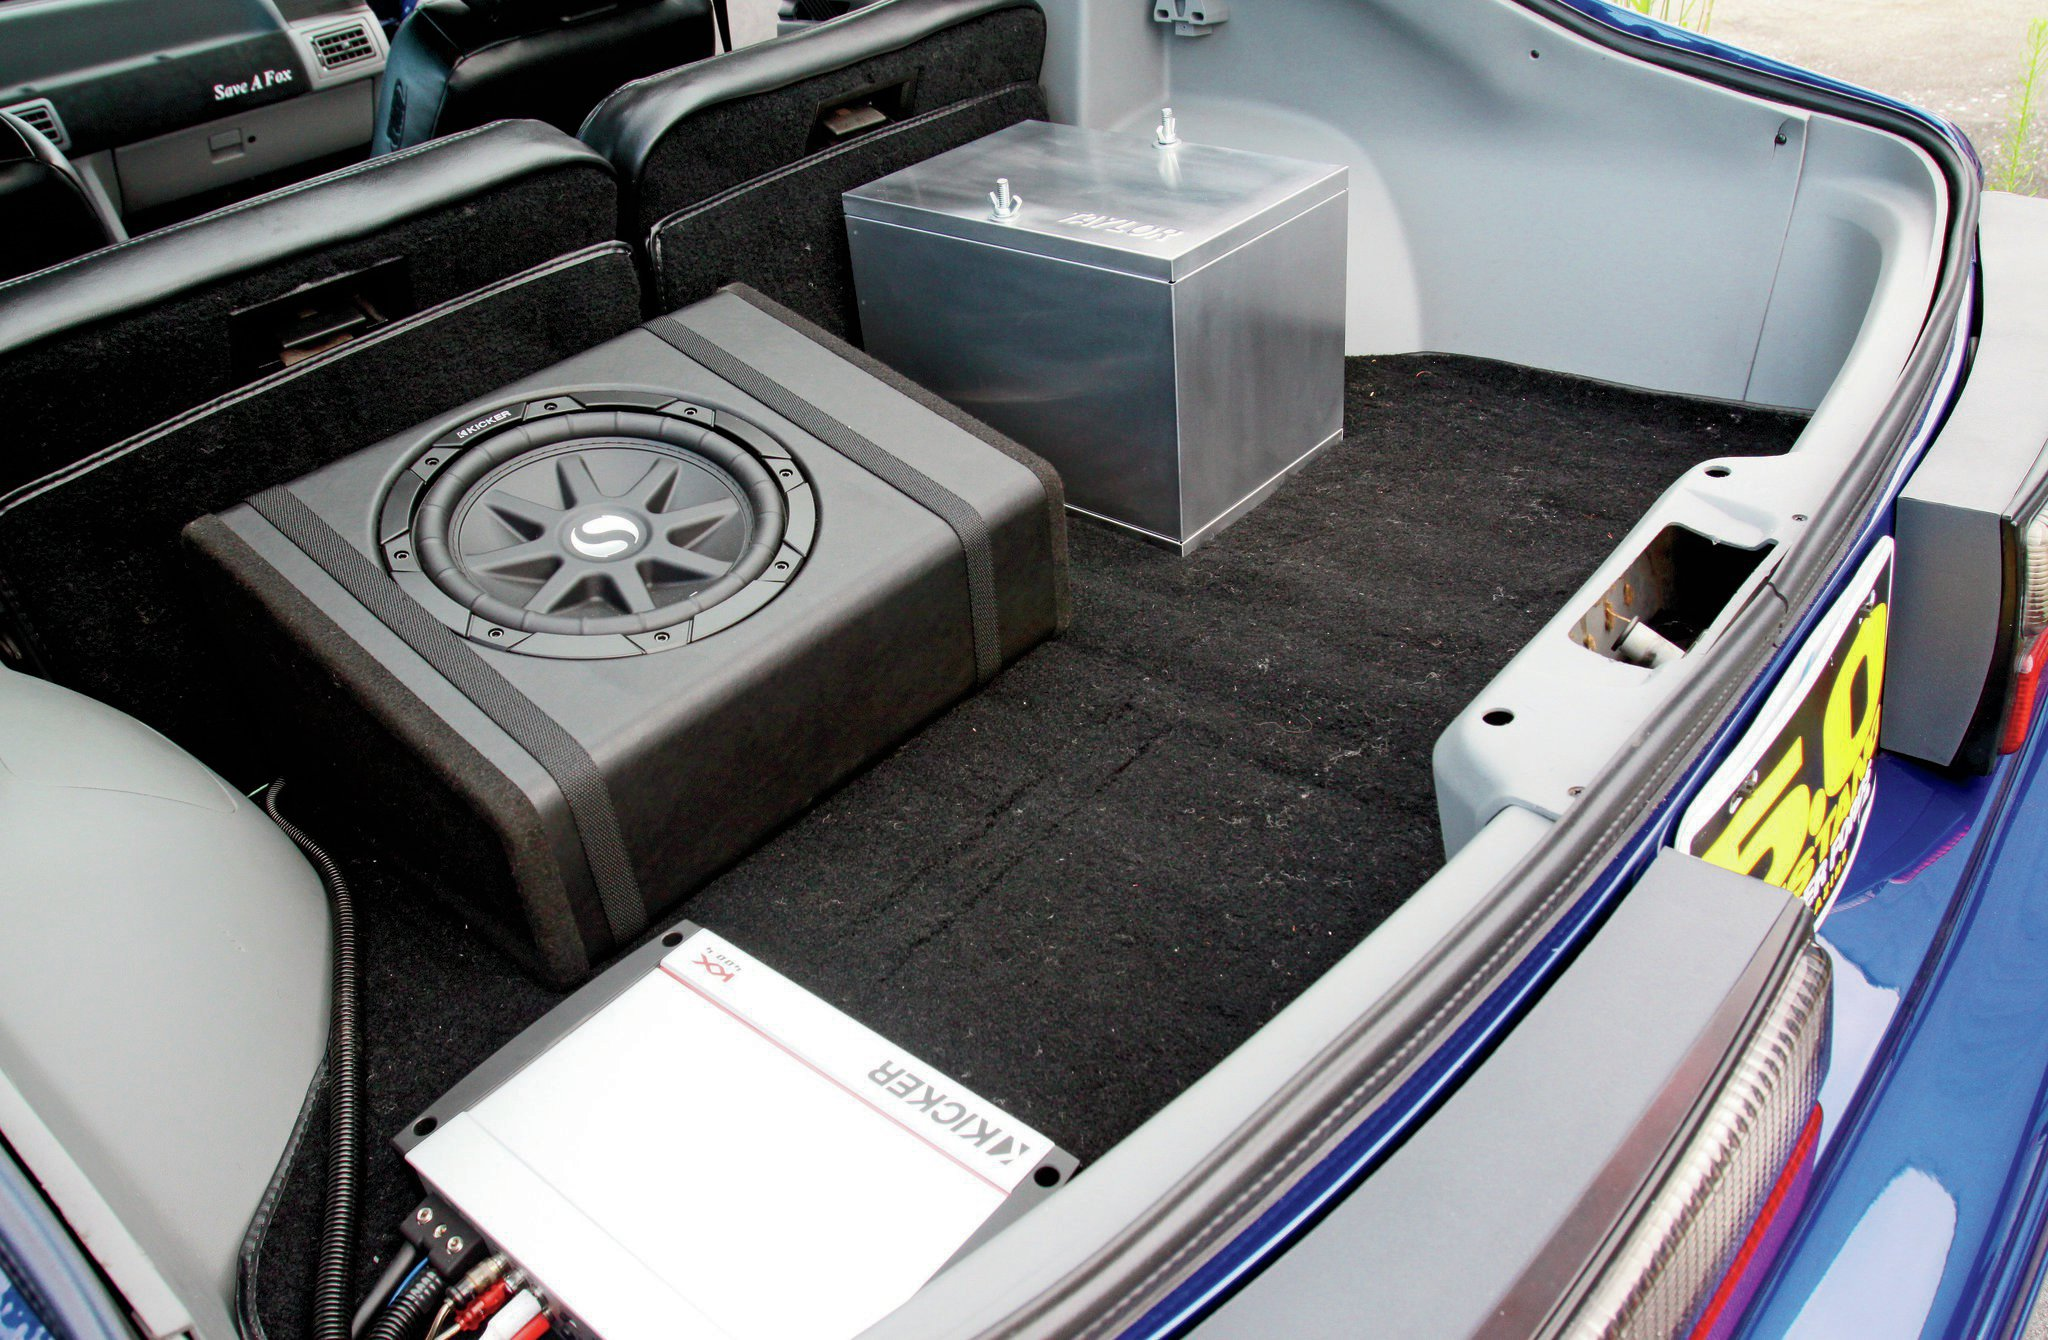 1989 Ford Mustang Lx Trunk